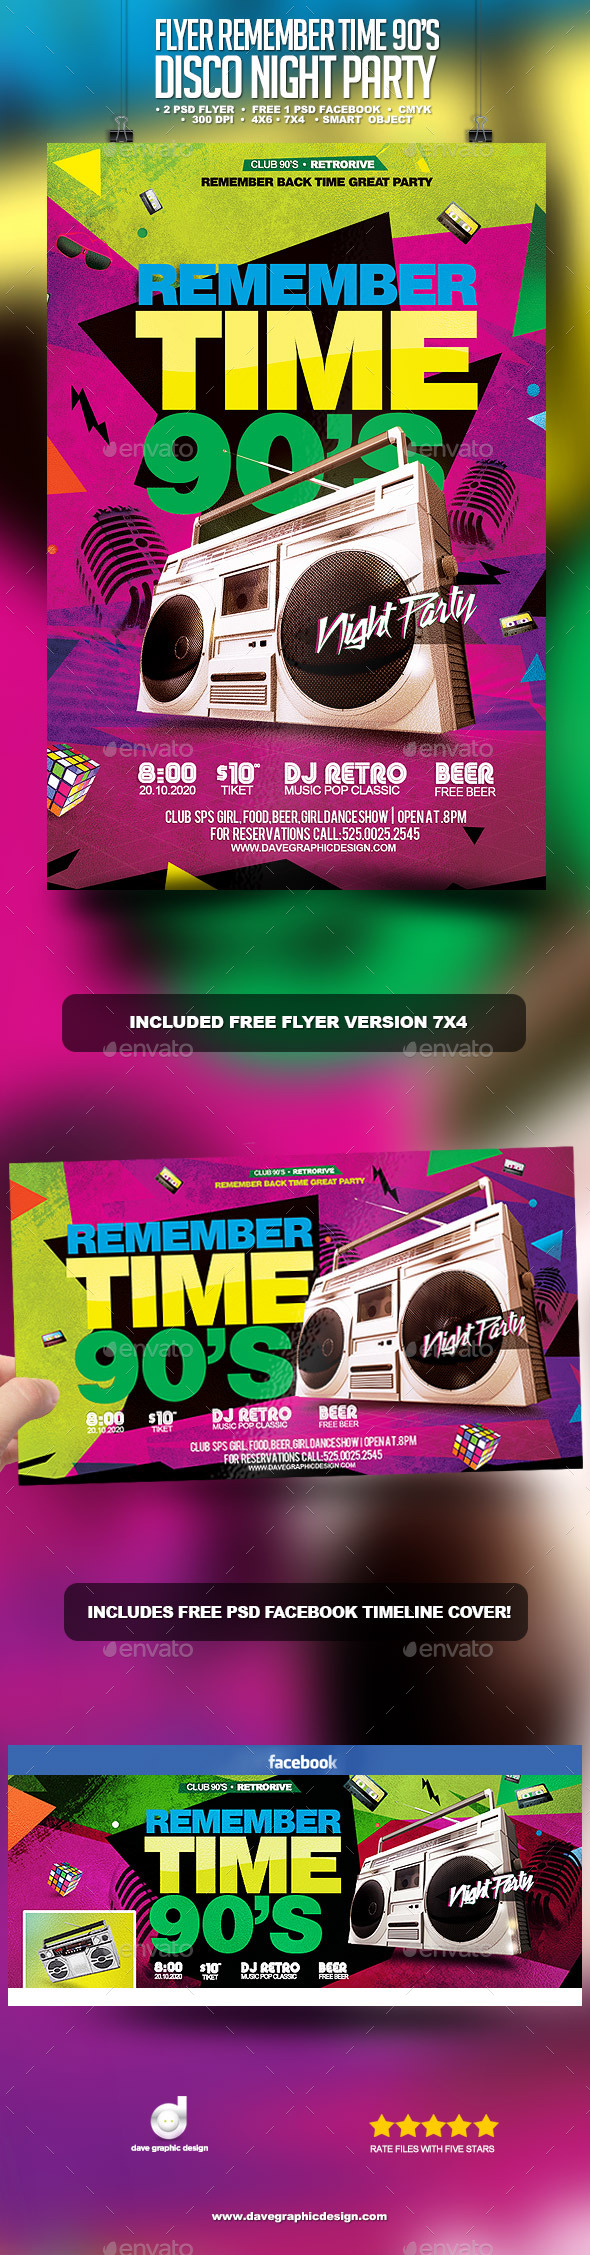 Flyer Remember Time 90's - Disco Night Party - Clubs & Parties Events